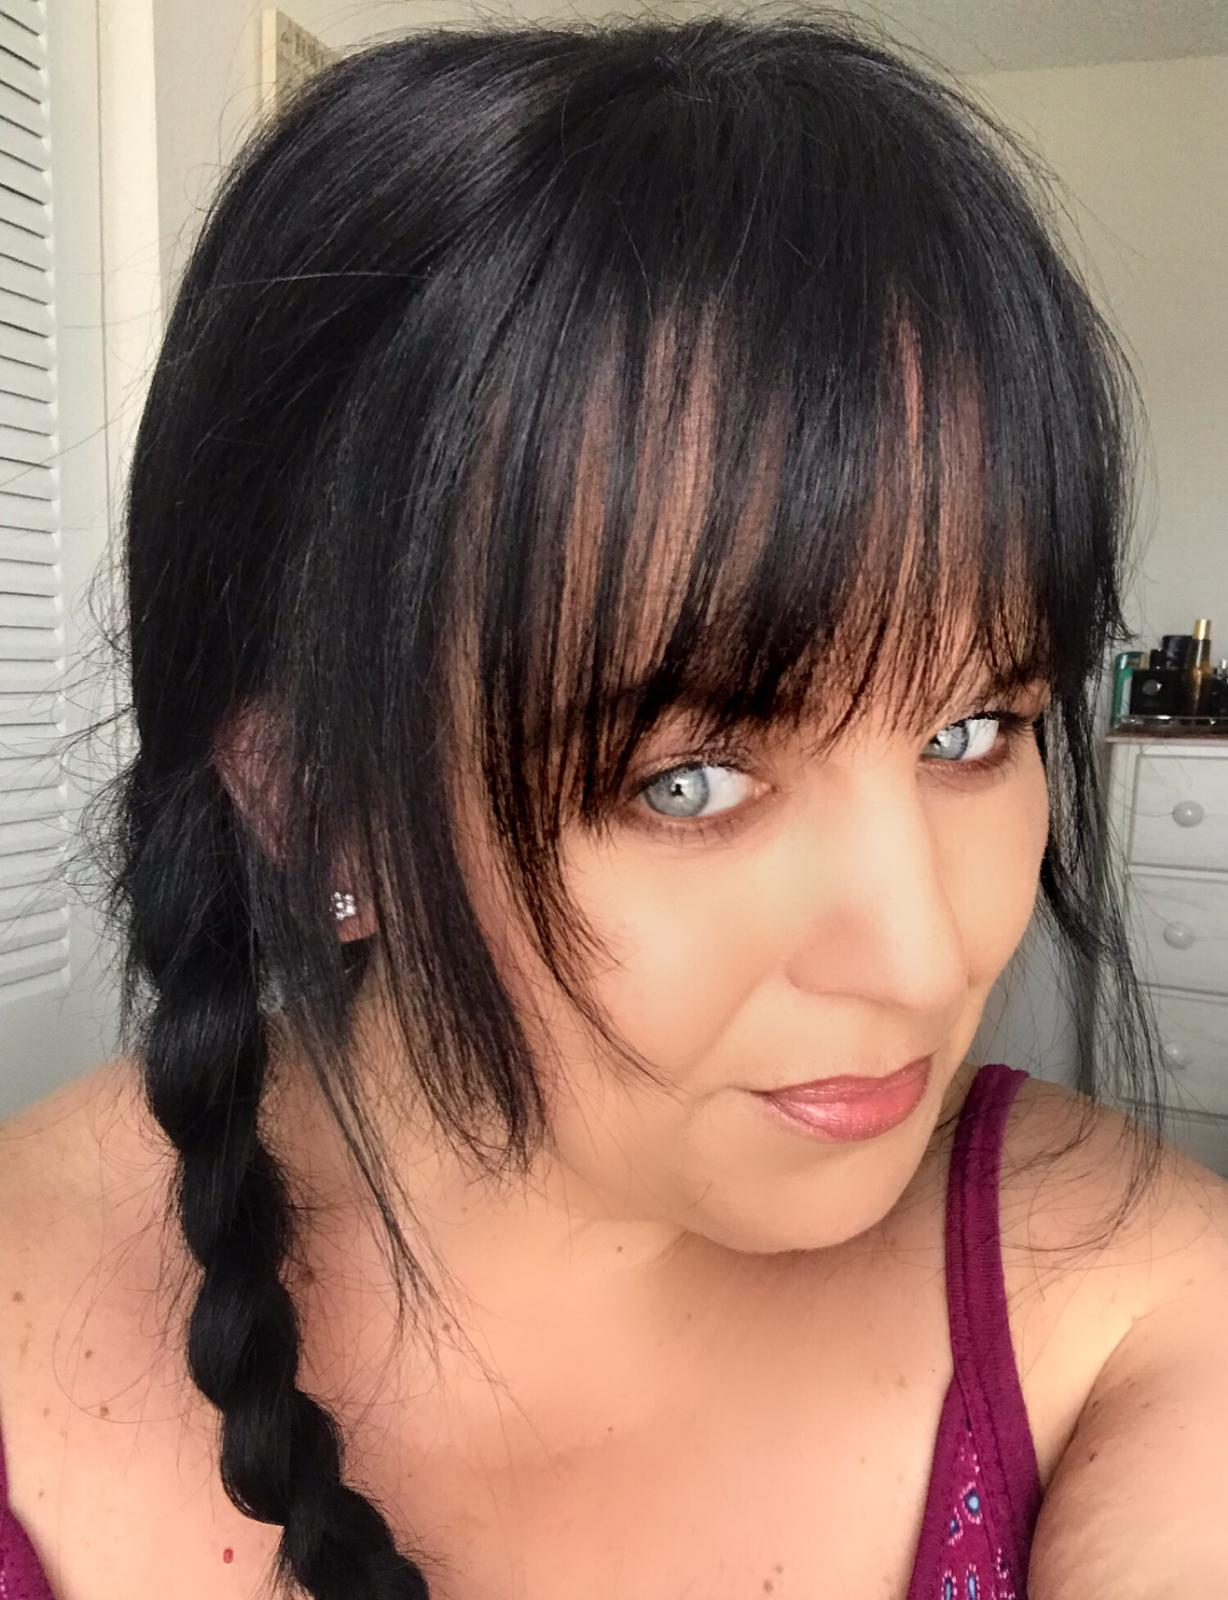 Hair topper with fringe bangs hair loss